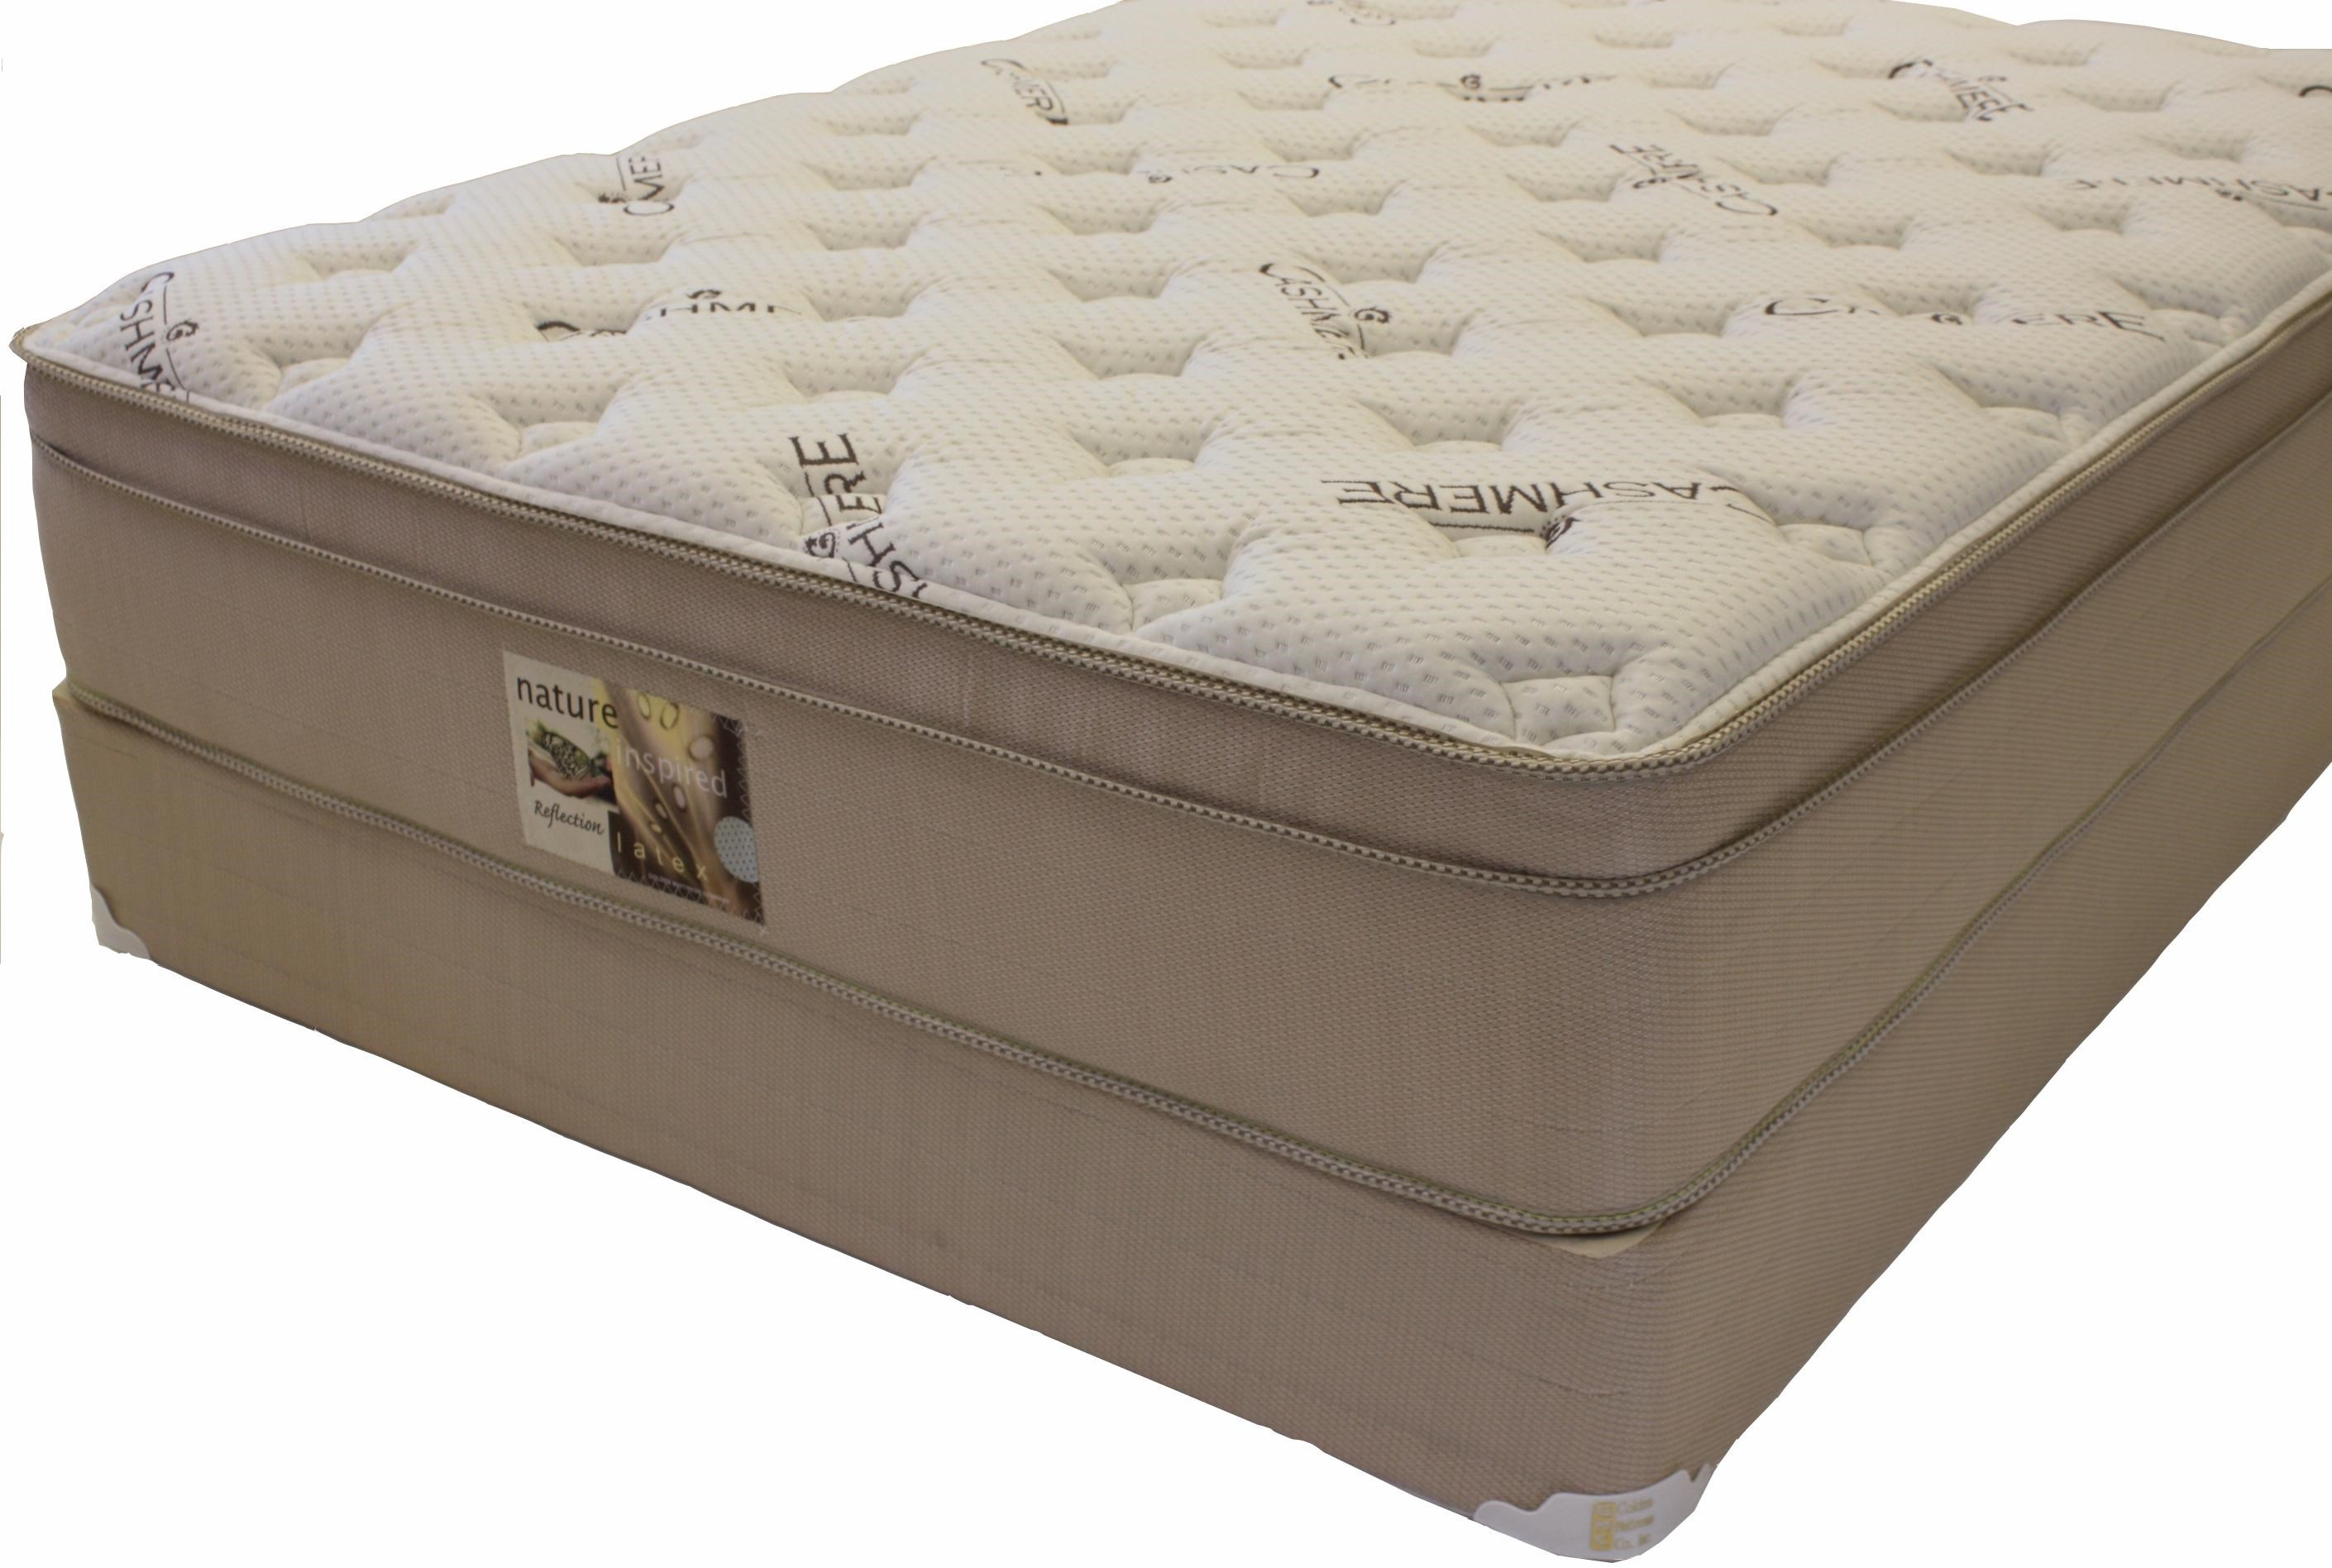 Golden Mattress Company Reflection Latex King Euro Top